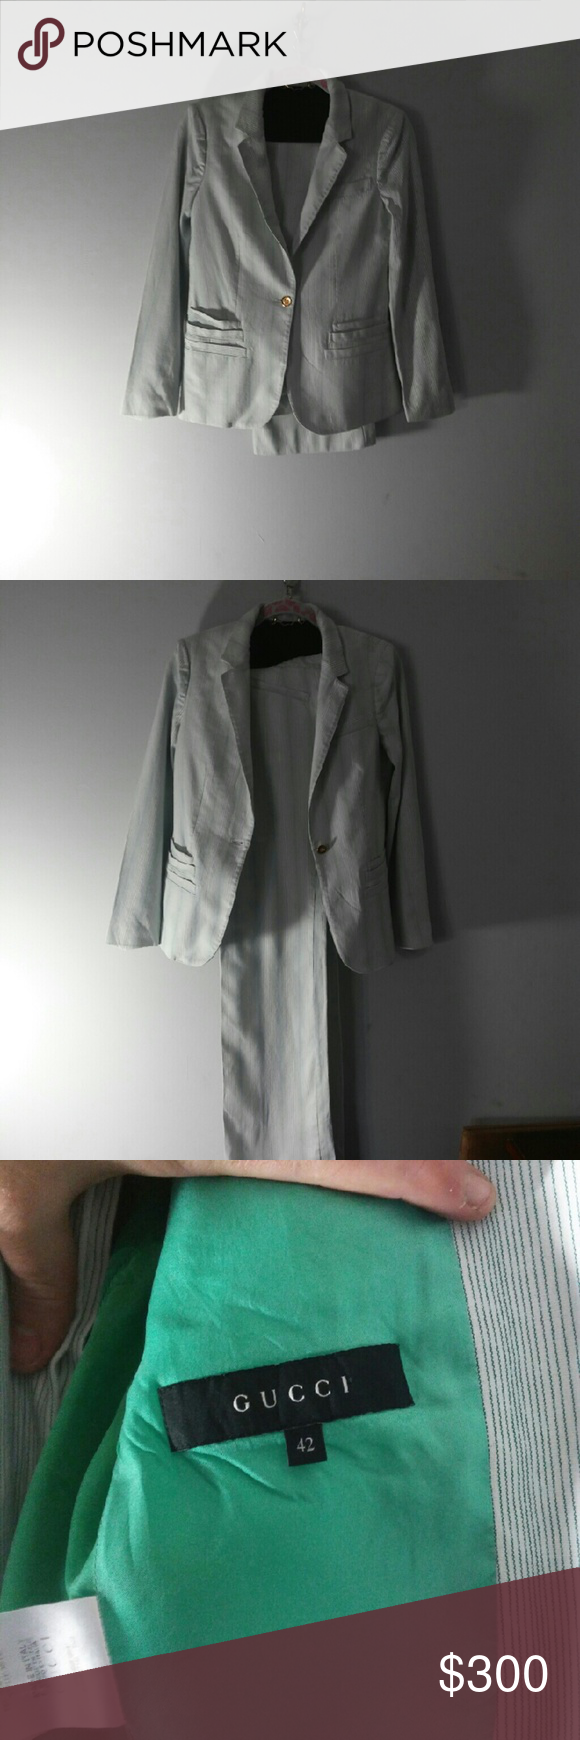 gucci 2 piece. gucci green and white 2 piece suit size 42 s